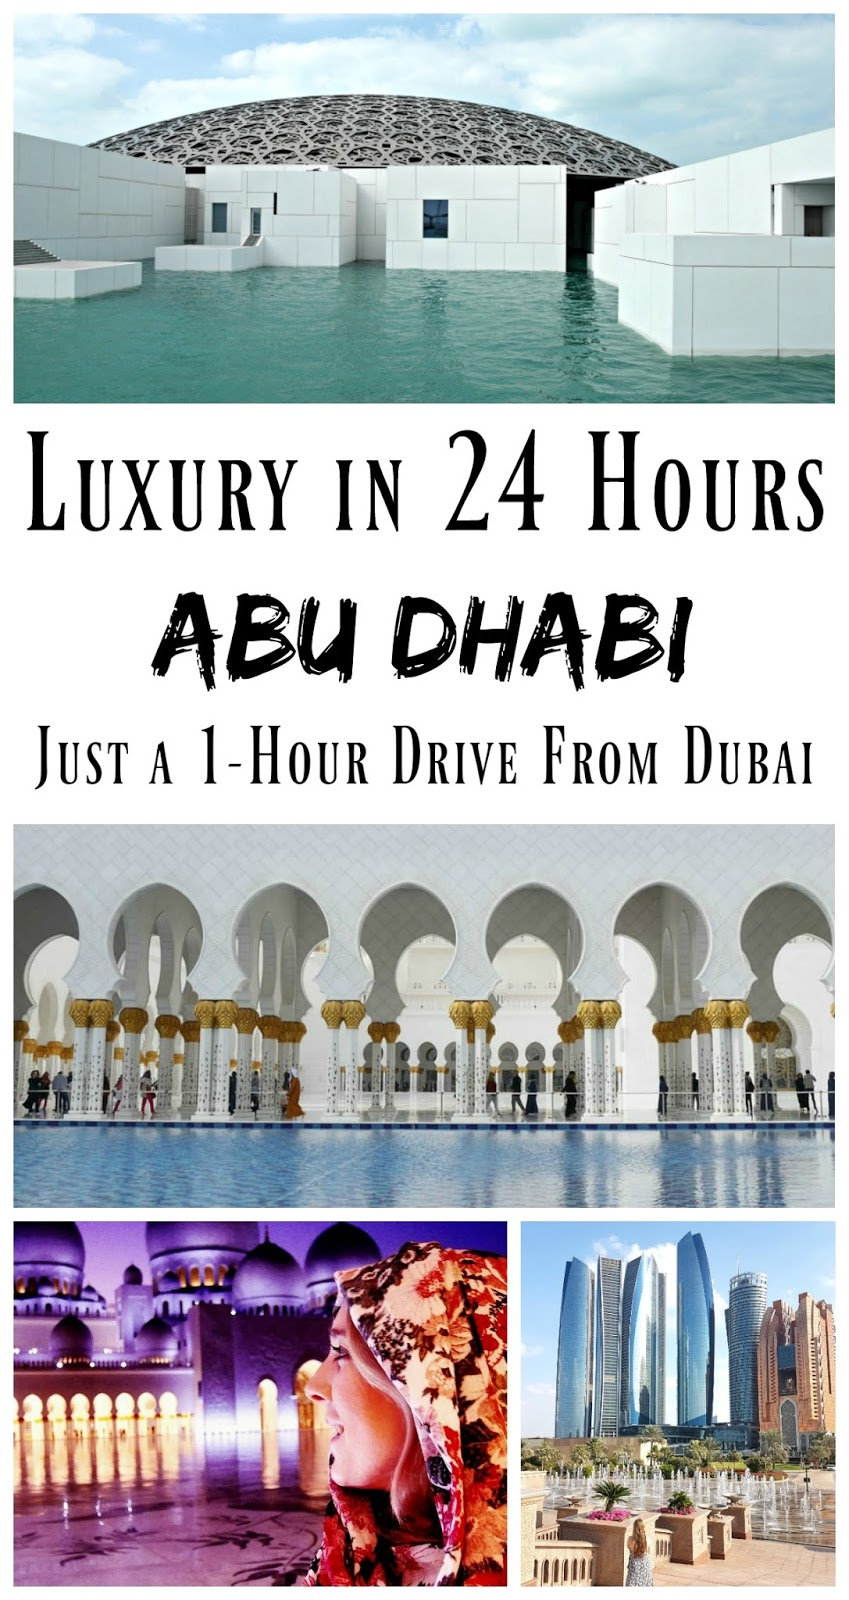 PIN FOR LATER: Spend a luxury 24 hours in Abu Dhabi, in the United Arab Emirates. Home to the Sheikh Zayad Mosque and Louvre museum, it's just a one hour drive from Dubai, so makes the perfect day trip or one-night stopover while your visiting Dubai.